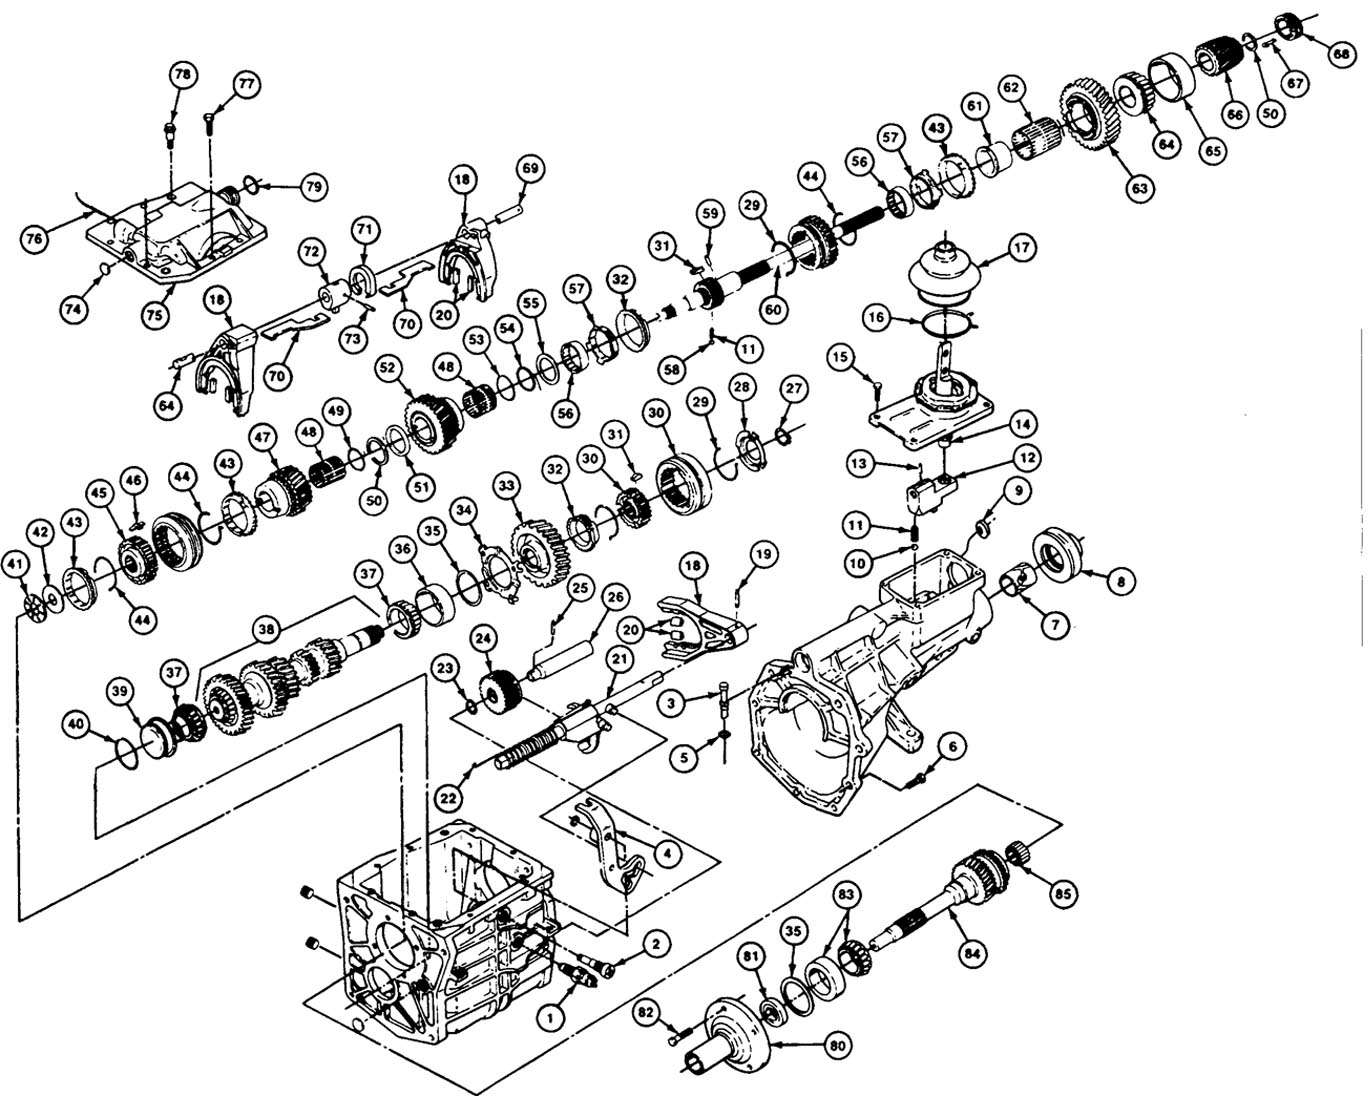 1aki0 1998 Grand Cherokee 4x4 Showing Code P0720 I Ve in addition 1996 F250 4x4 Front Axle Diagram together with 1996 F150 Front Suspension Diagram likewise Ford Truck Manual Service Repair Workshop Owners Pdf as well Transmission Parts Exploded View. on jeep cherokee xj repair manual and service html